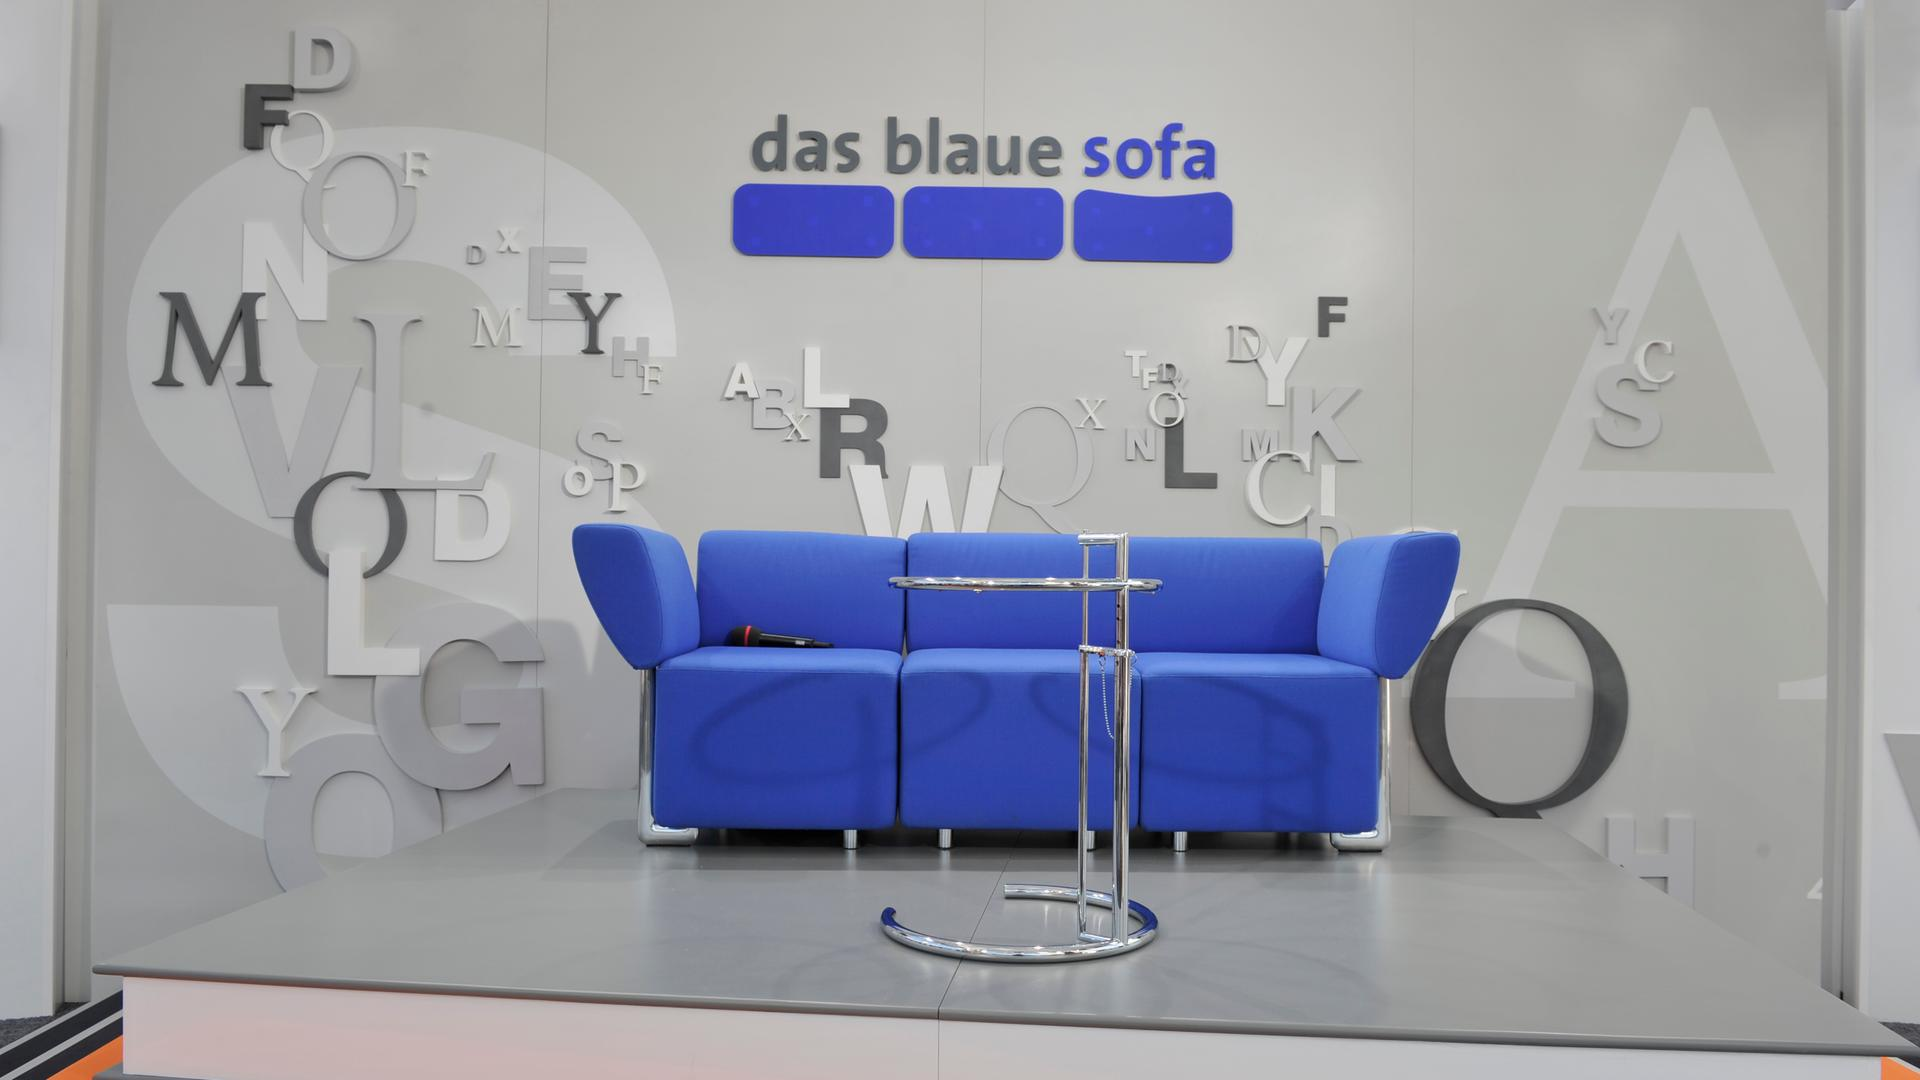 blau sofa top dunkel blau loft wohnzimmer blauen sofa poster u stockfoto with blau sofa das. Black Bedroom Furniture Sets. Home Design Ideas